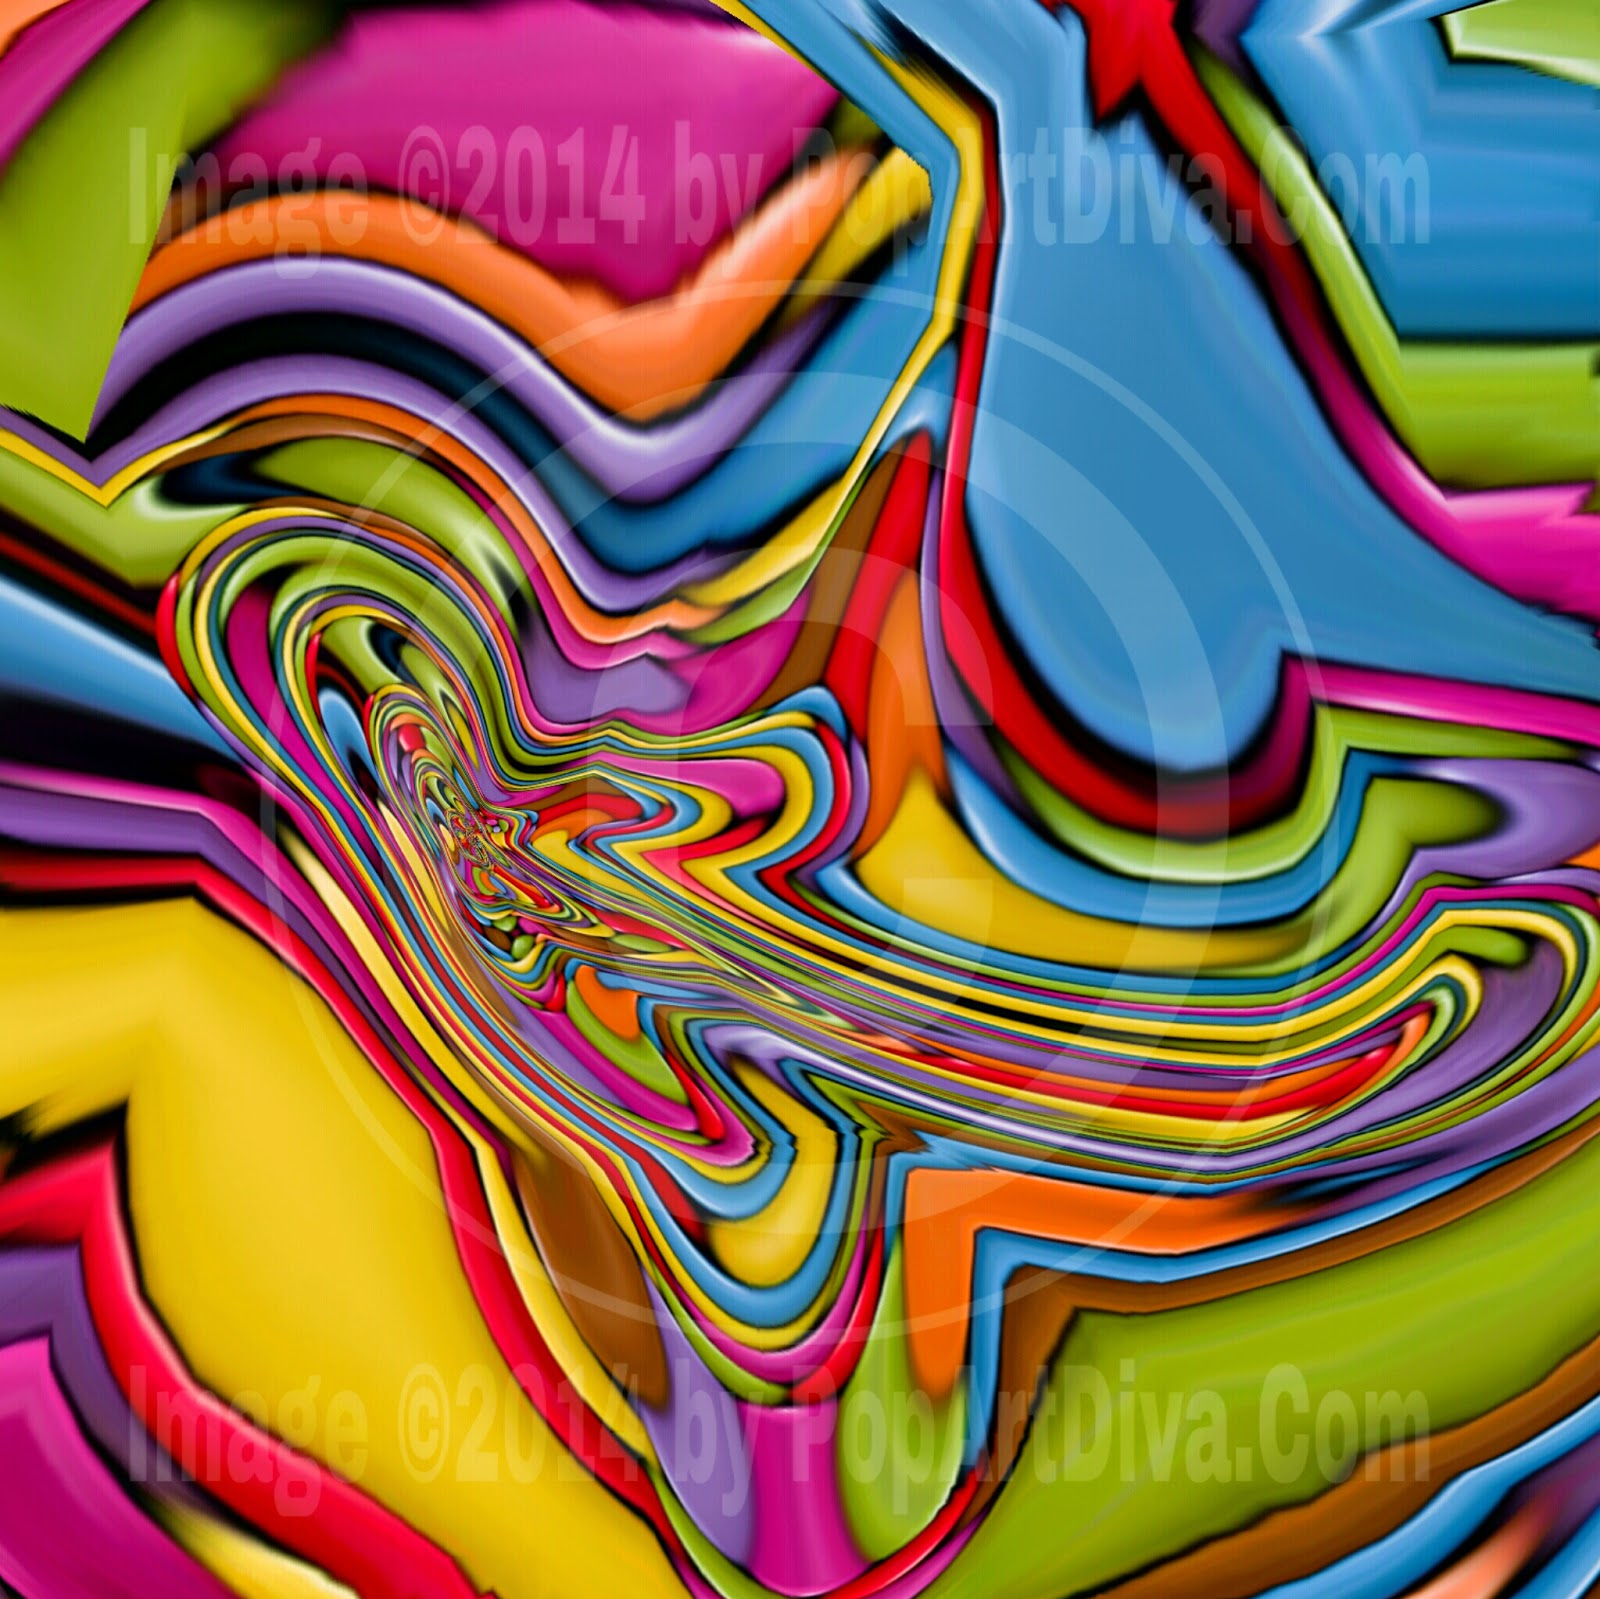 http://store.payloadz.com/details/2084836-photos-and-images-abstract-squished-abstract-art-web-graphic.html